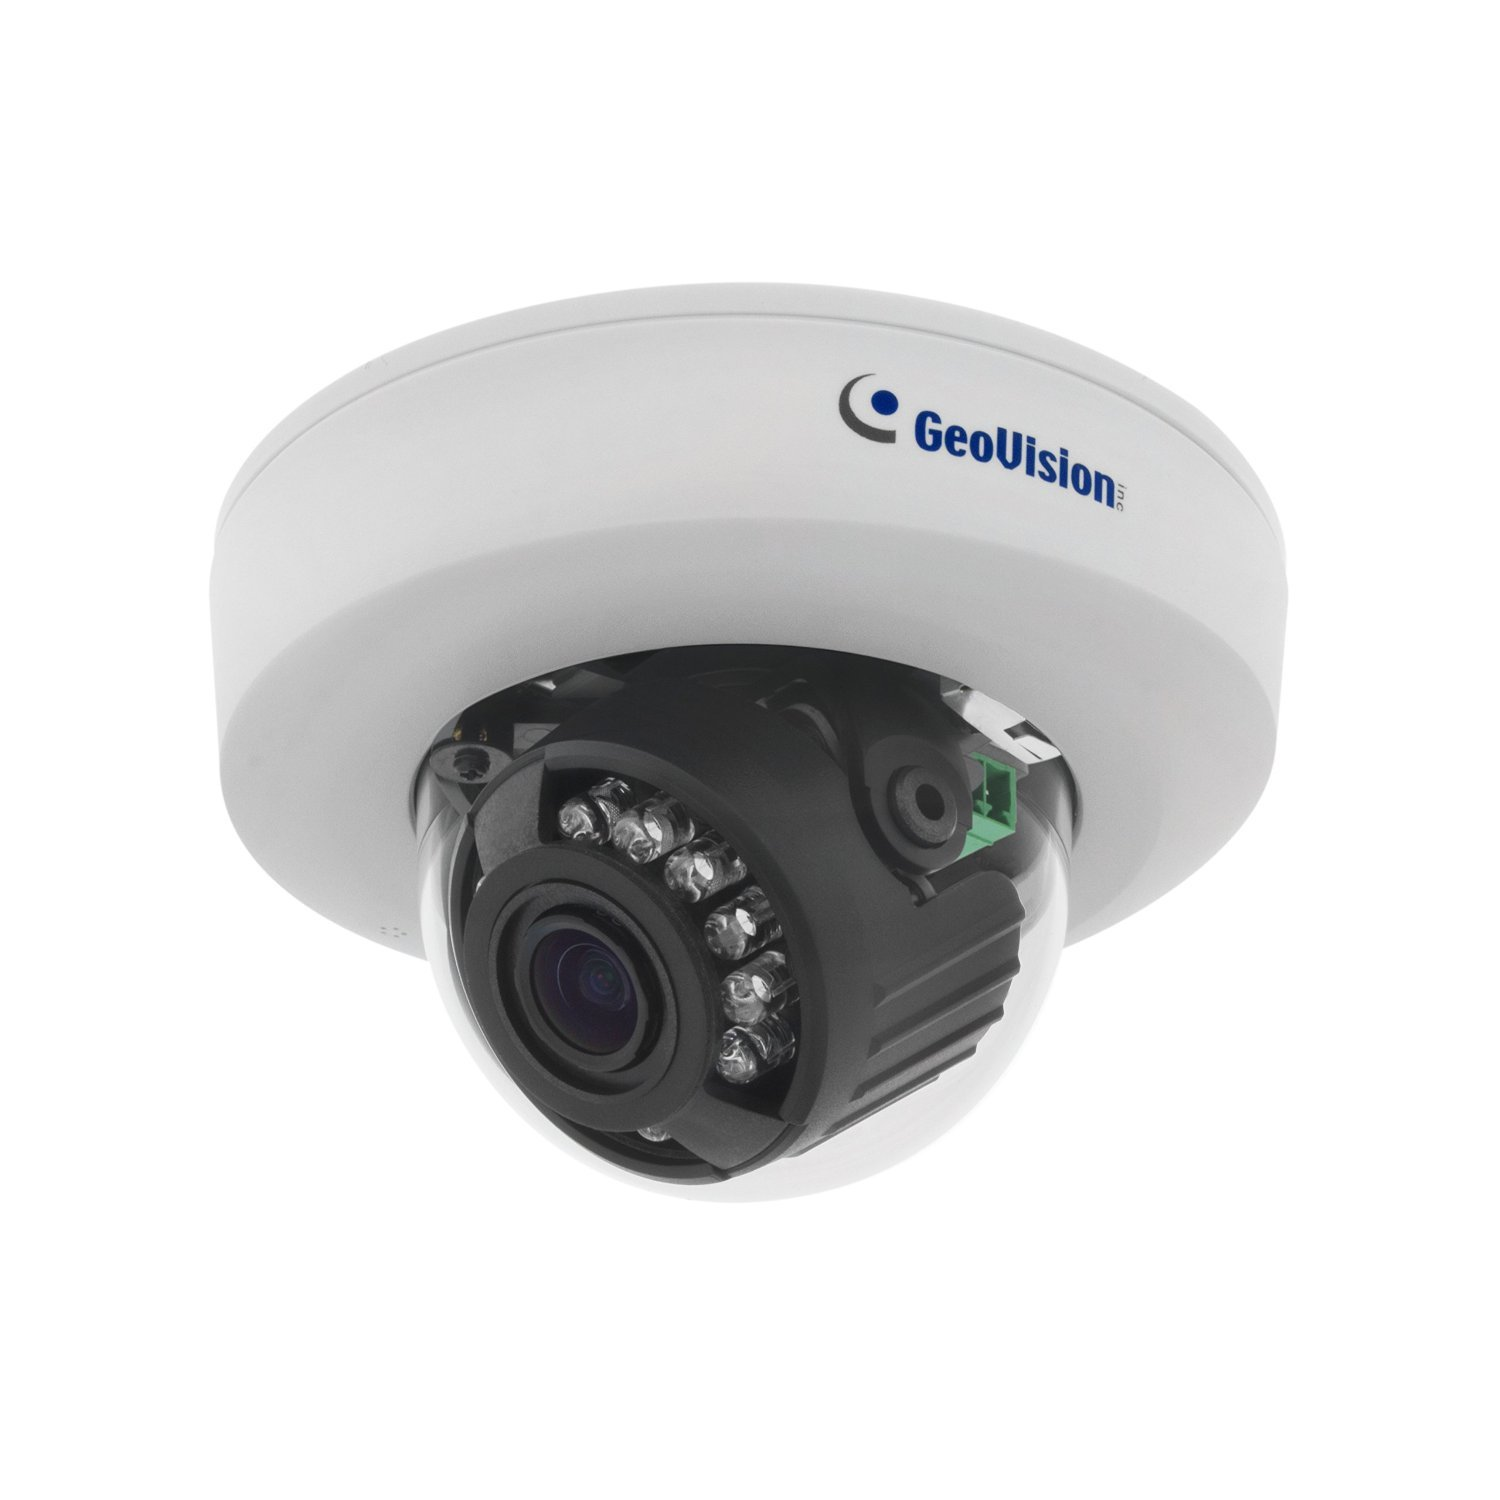 Geovision GV-EFD2100-0F 2MP H.264 Low Lux WDR IR 2.8mm Mini IP Dome Camera (White) [並行輸入品] B019SZA4W6